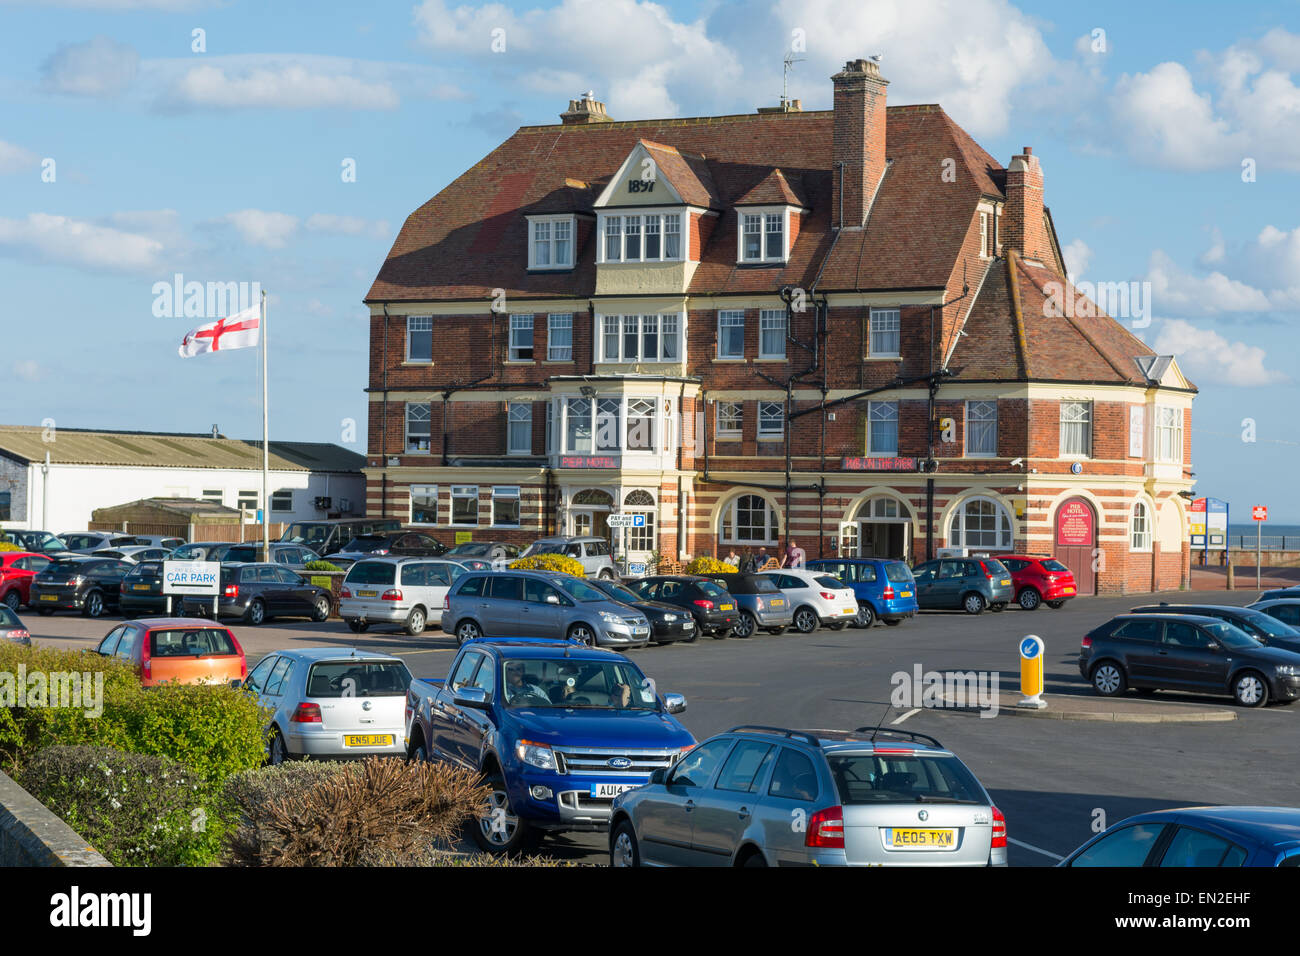 The Pier Hotel, Gorleston-on-Sea, Norfolk, UK - Stock Image